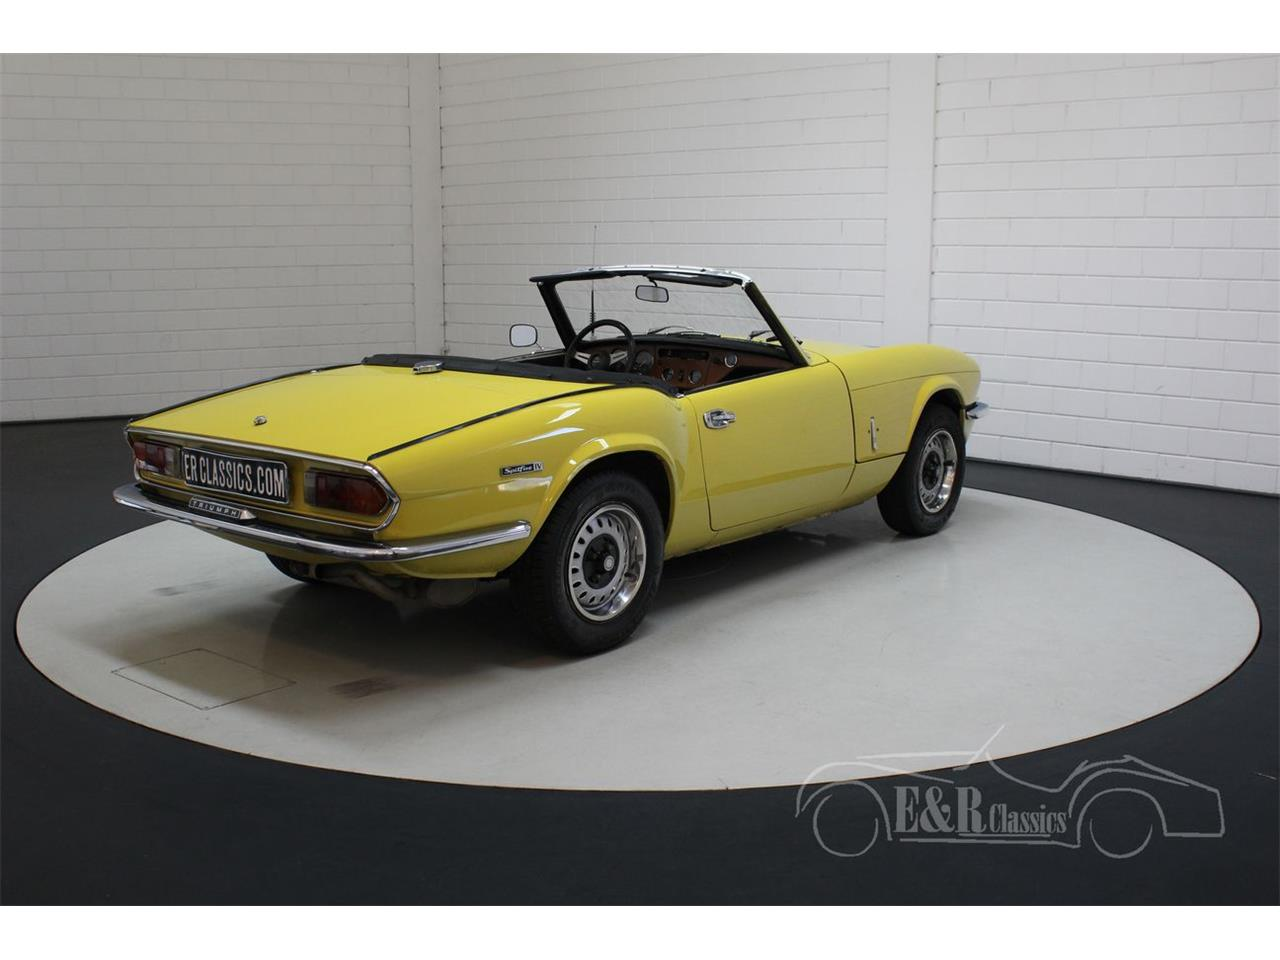 1974 Triumph Spitfire (CC-1319754) for sale in Waalwijk, Noord-Brabant